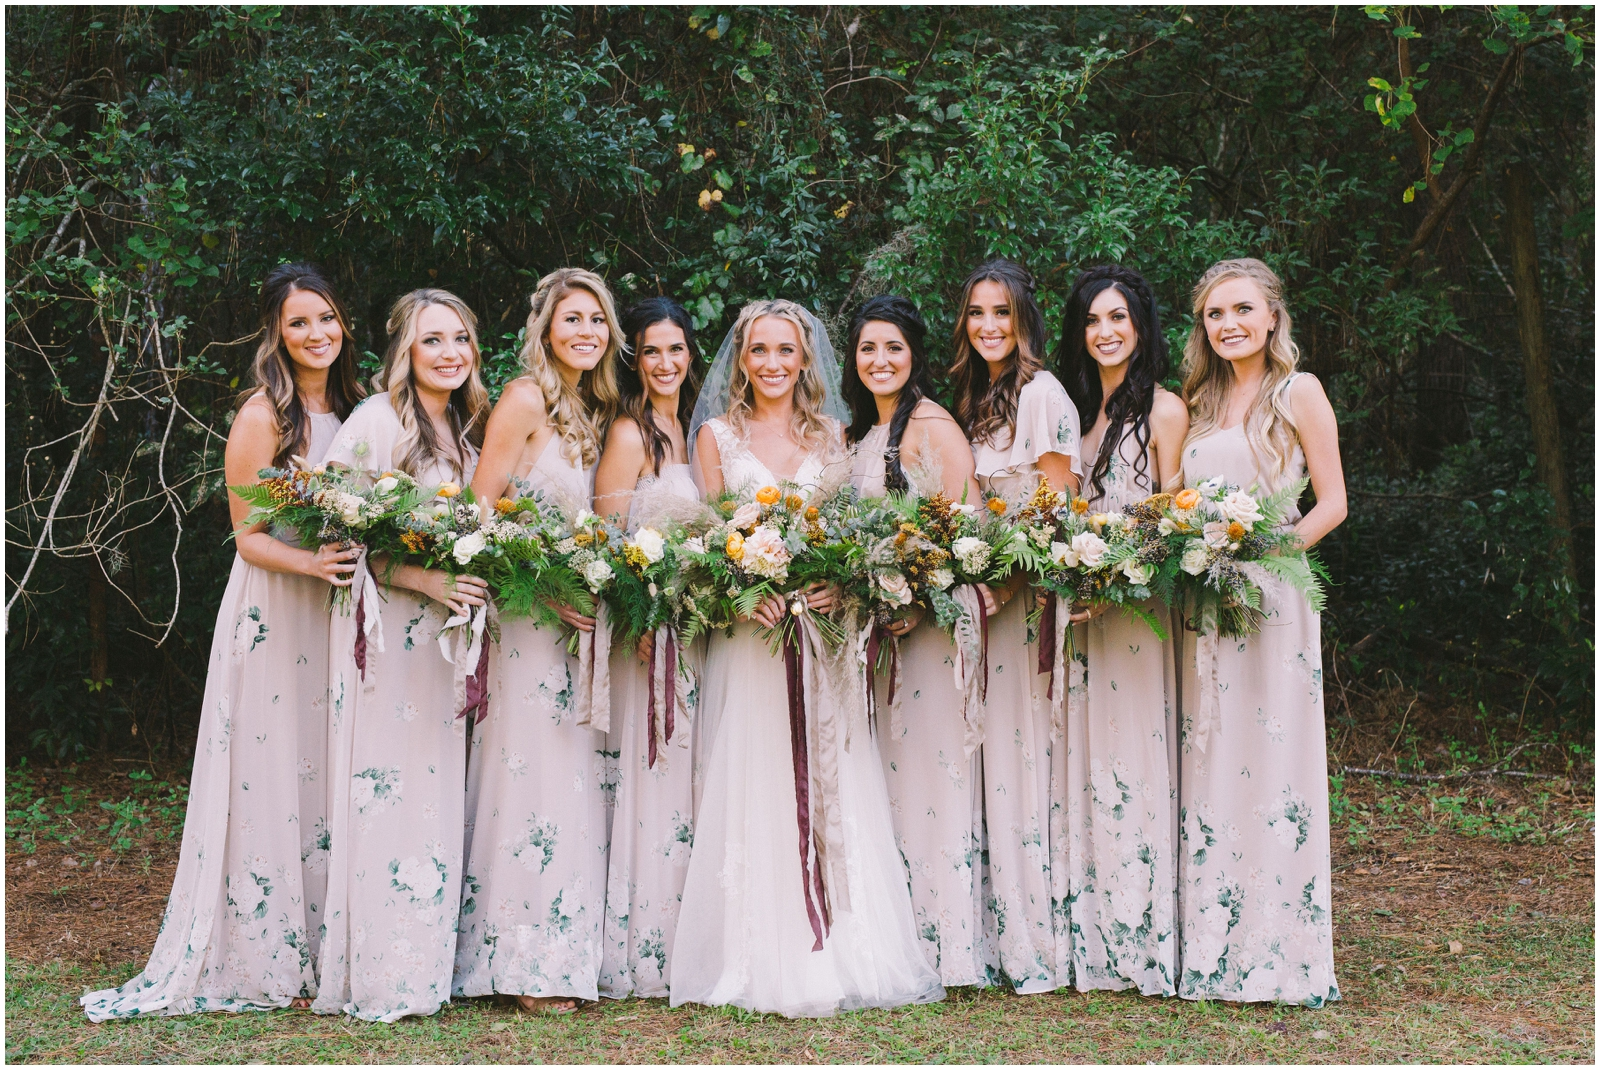 Bride and bridesmaids holding bridal bouquets